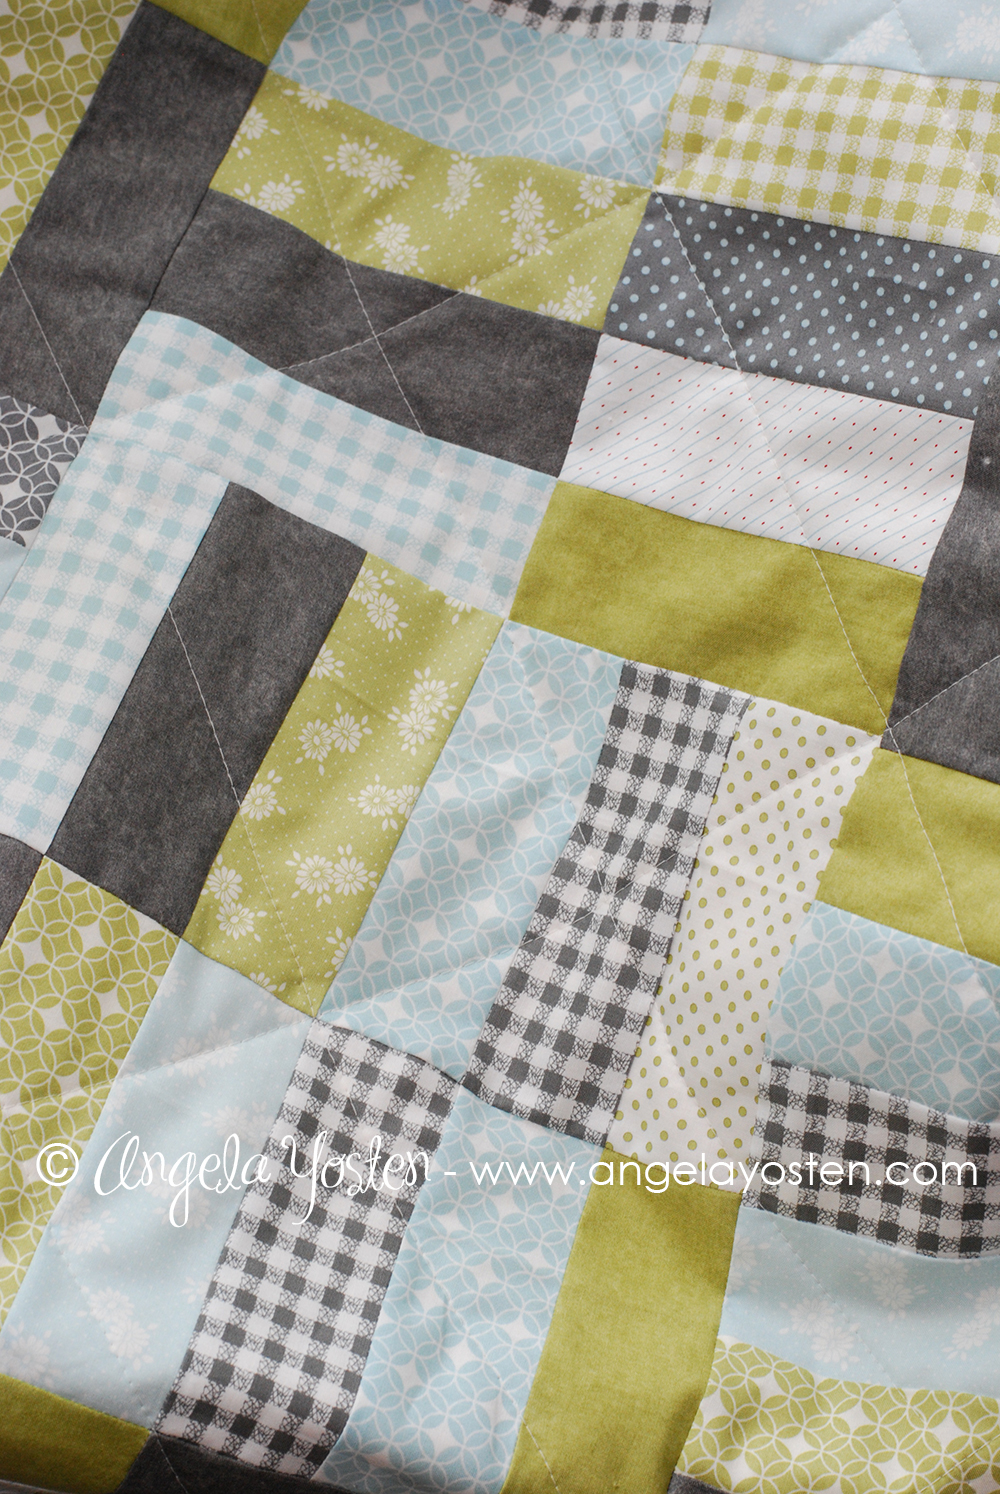 Angela Yosten Jelly Roll Jam Quilts